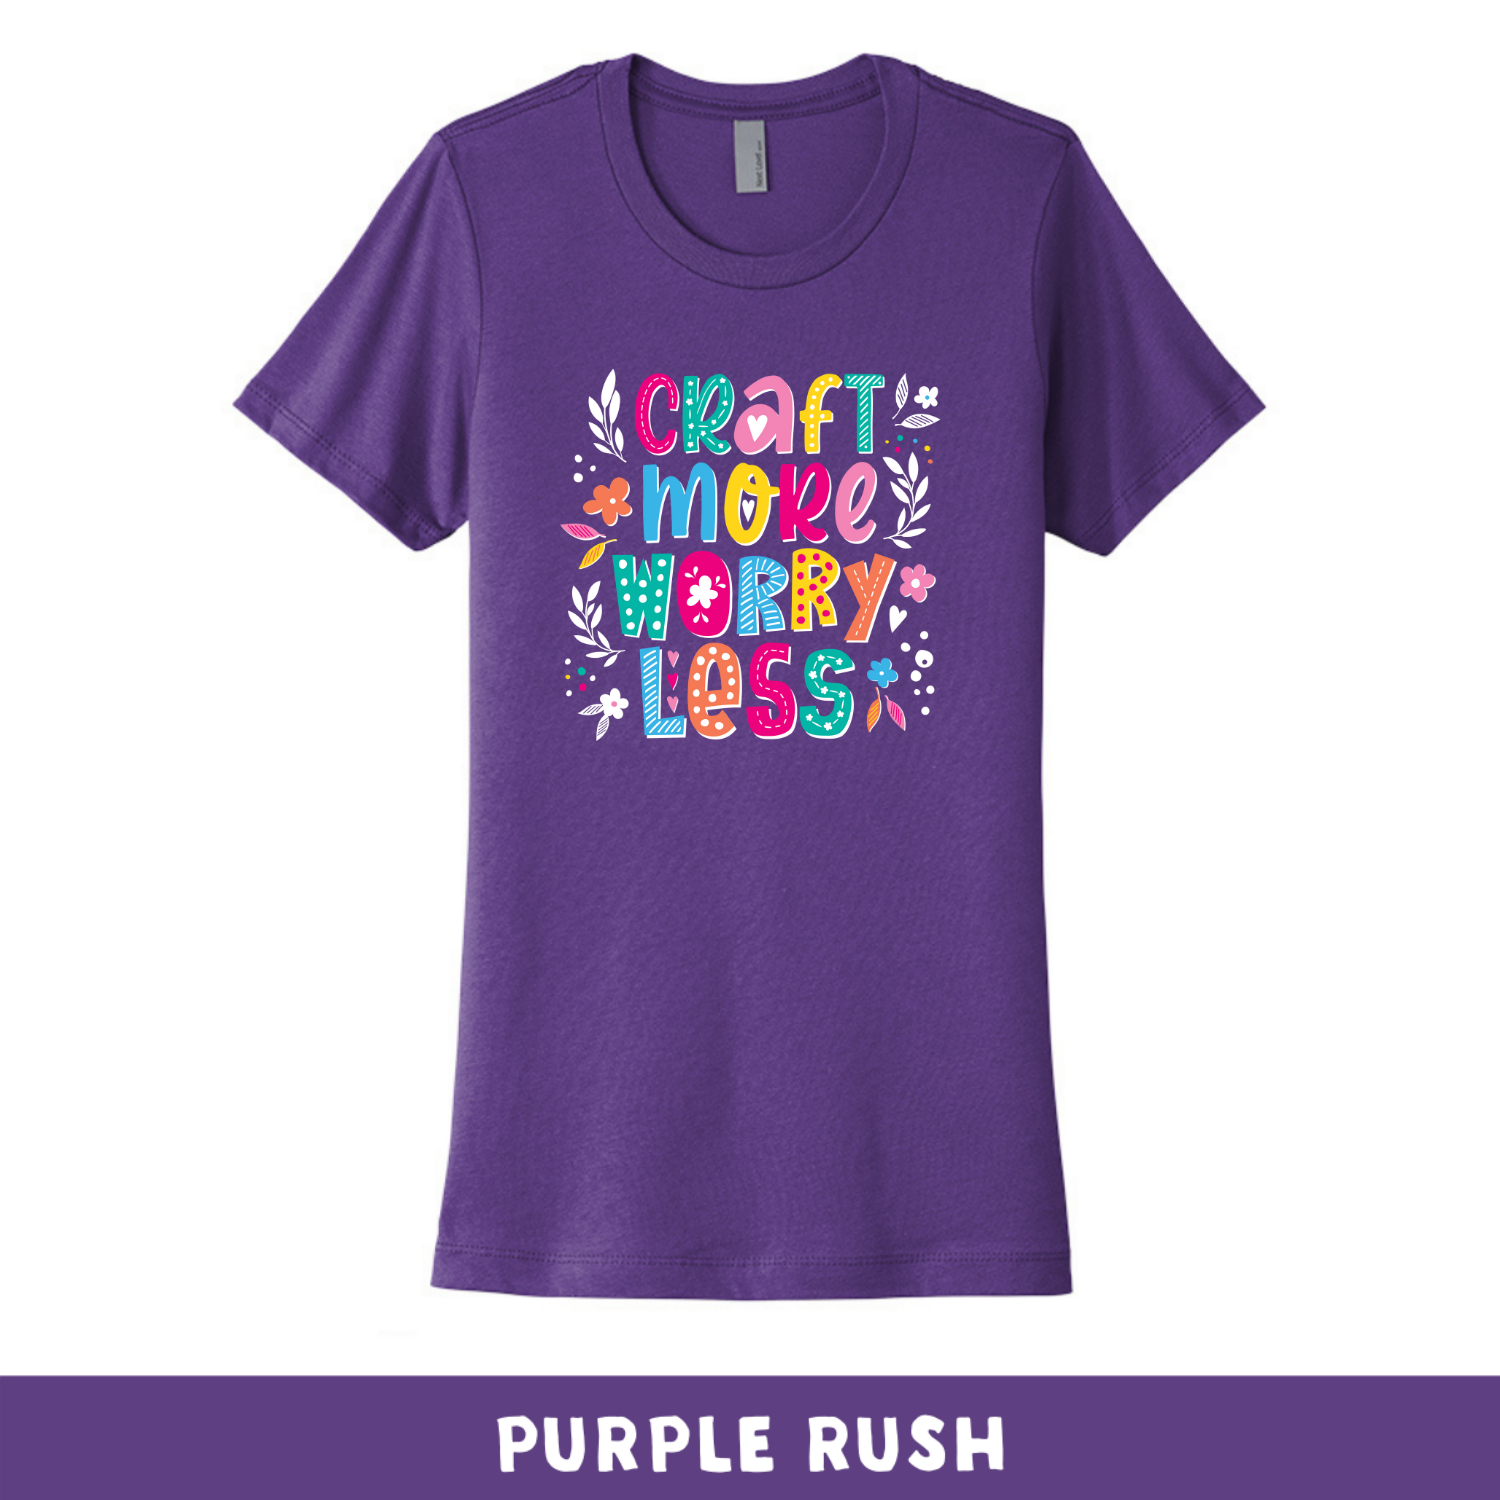 Purple Rush - Crew Neck Boyfriend Tee - Craft More Worry Less